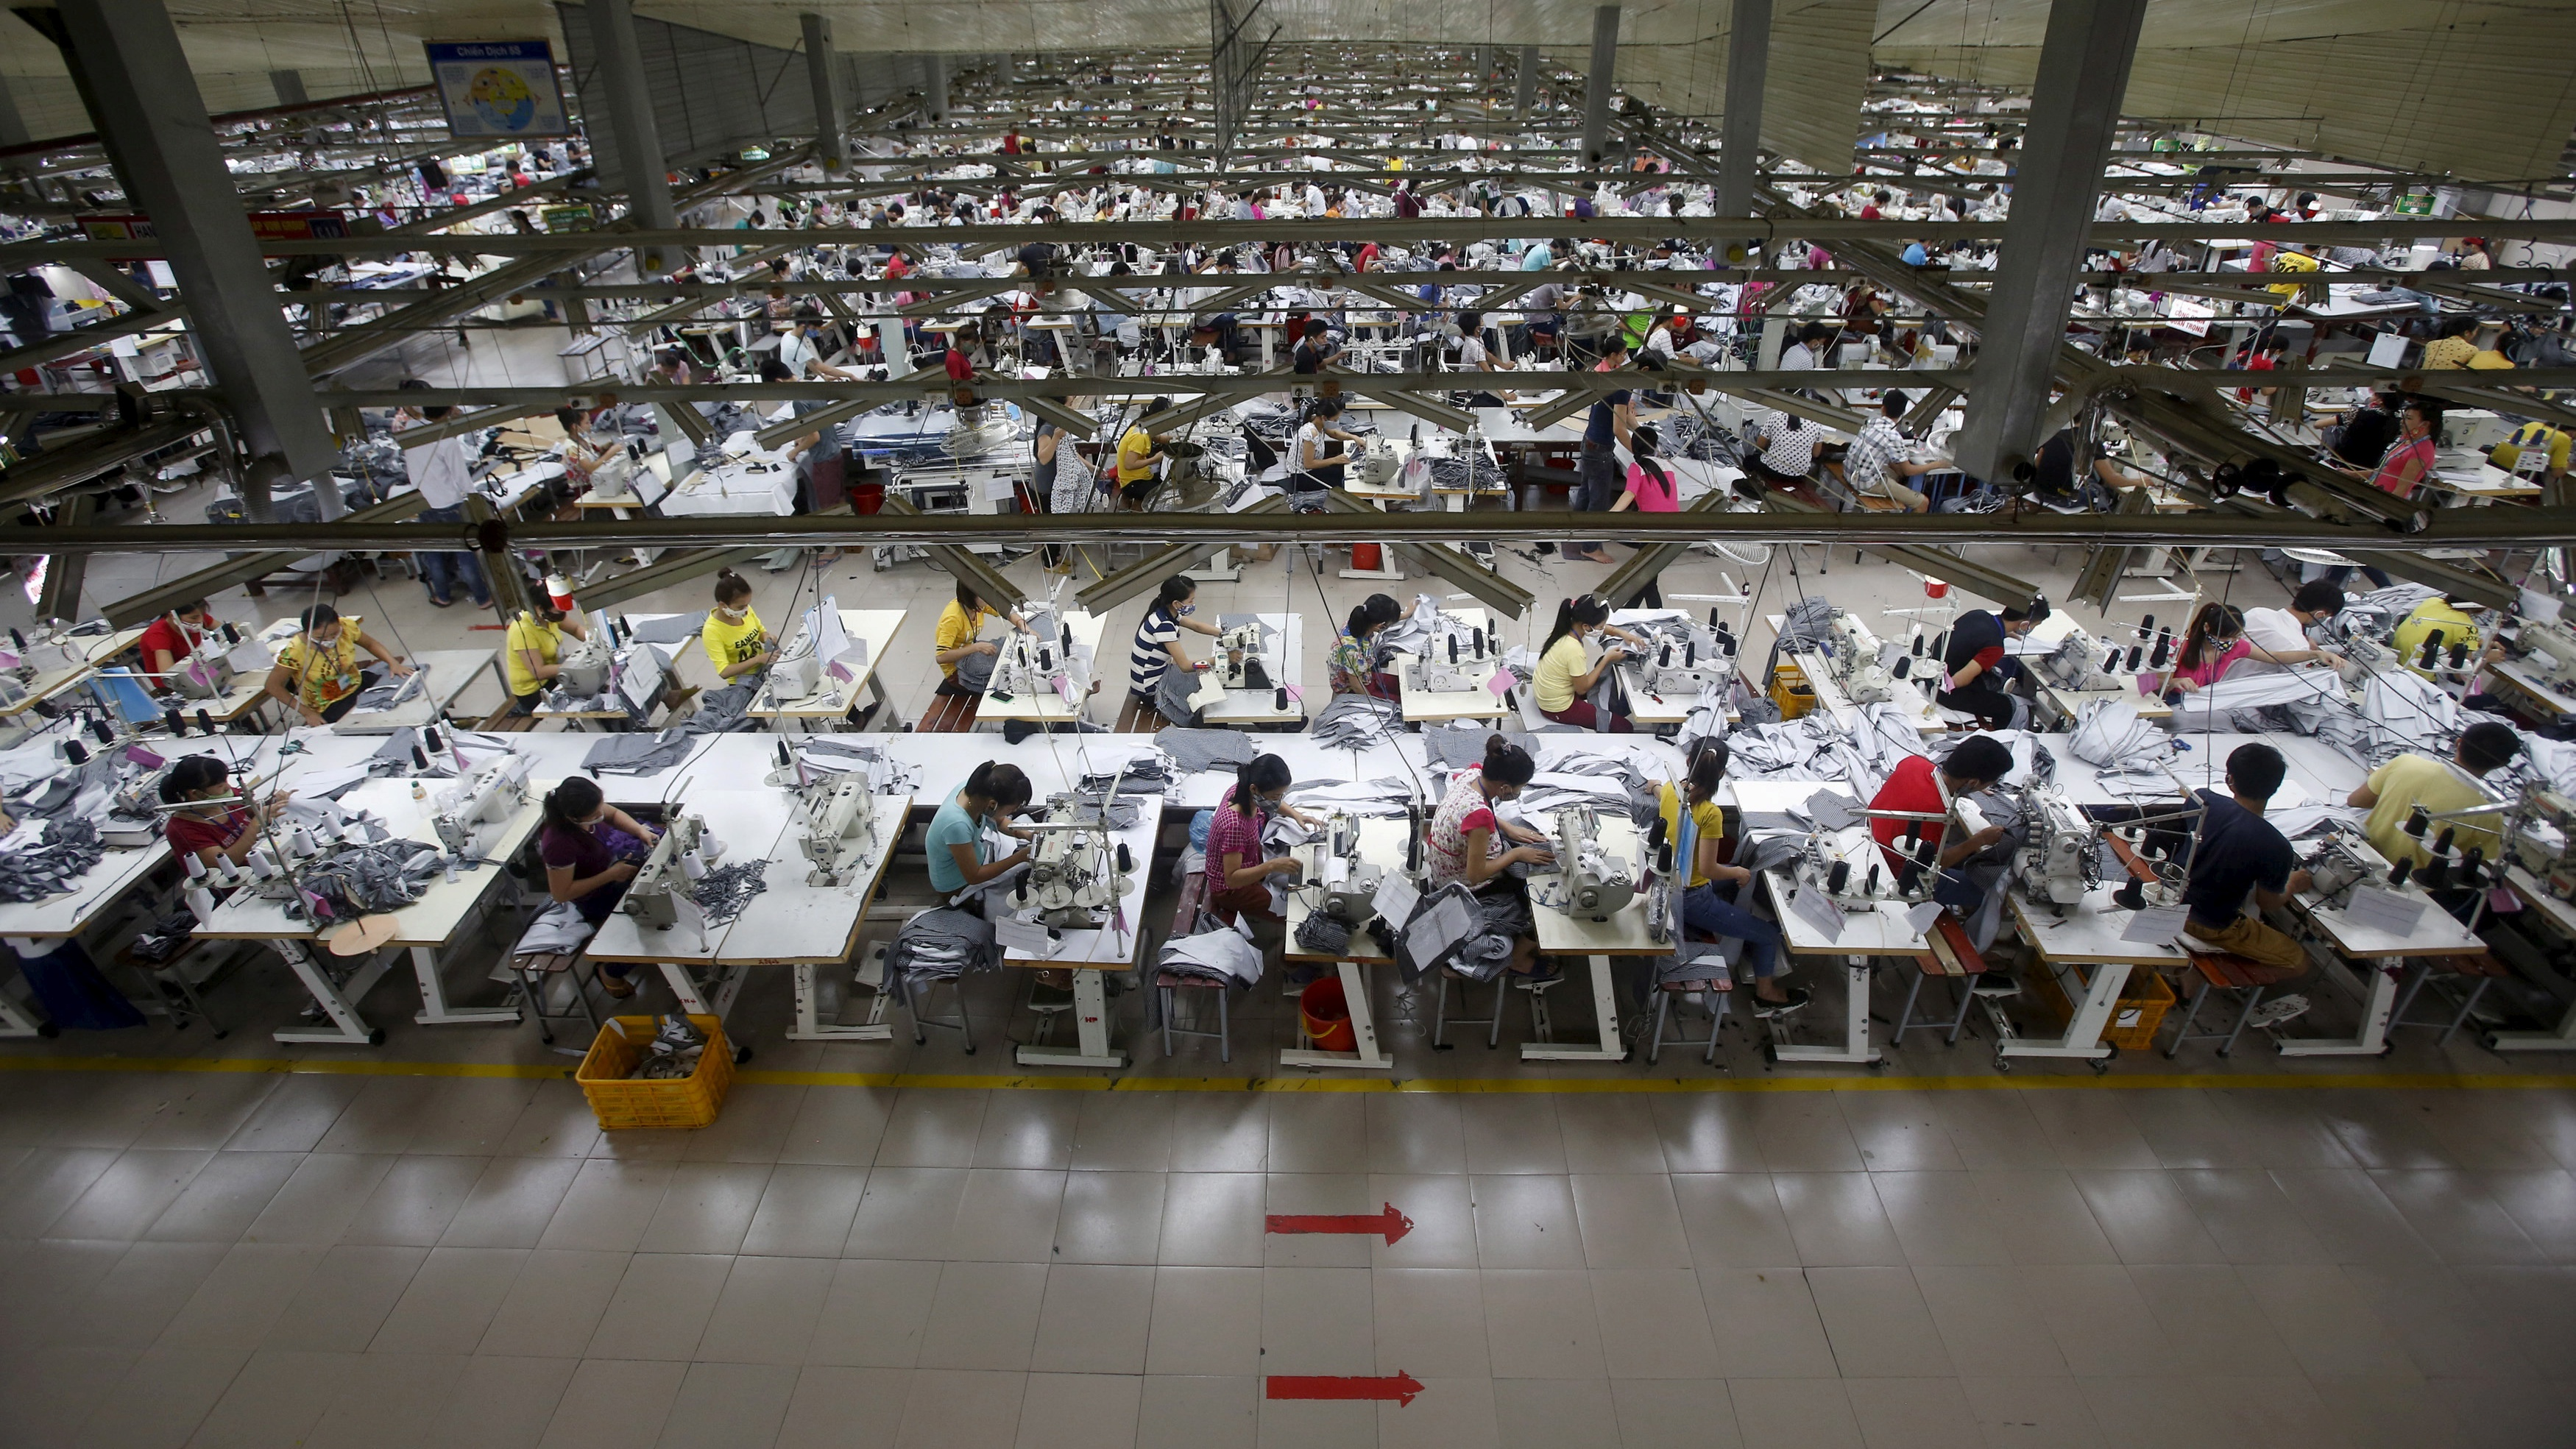 Labourers work at a garment factory in Bac Giang province, near Hanoi October 21, 2015. REUTERS/Kham/File Photo